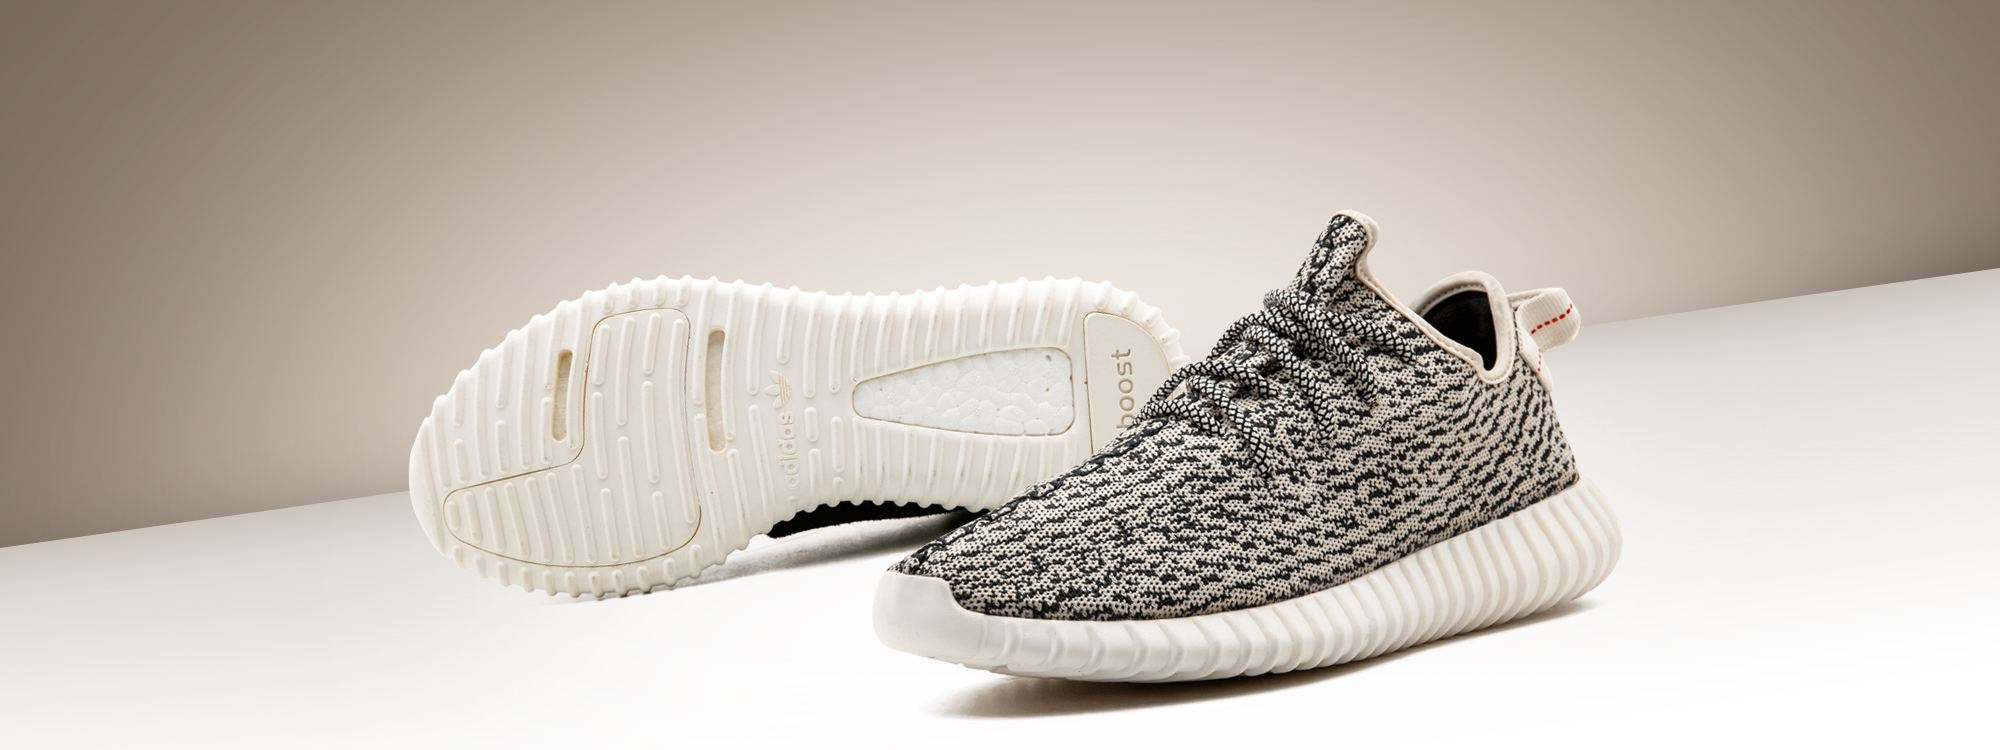 Order The best Adidas Yeezy Boost 350 Turtle Dove sneakers online